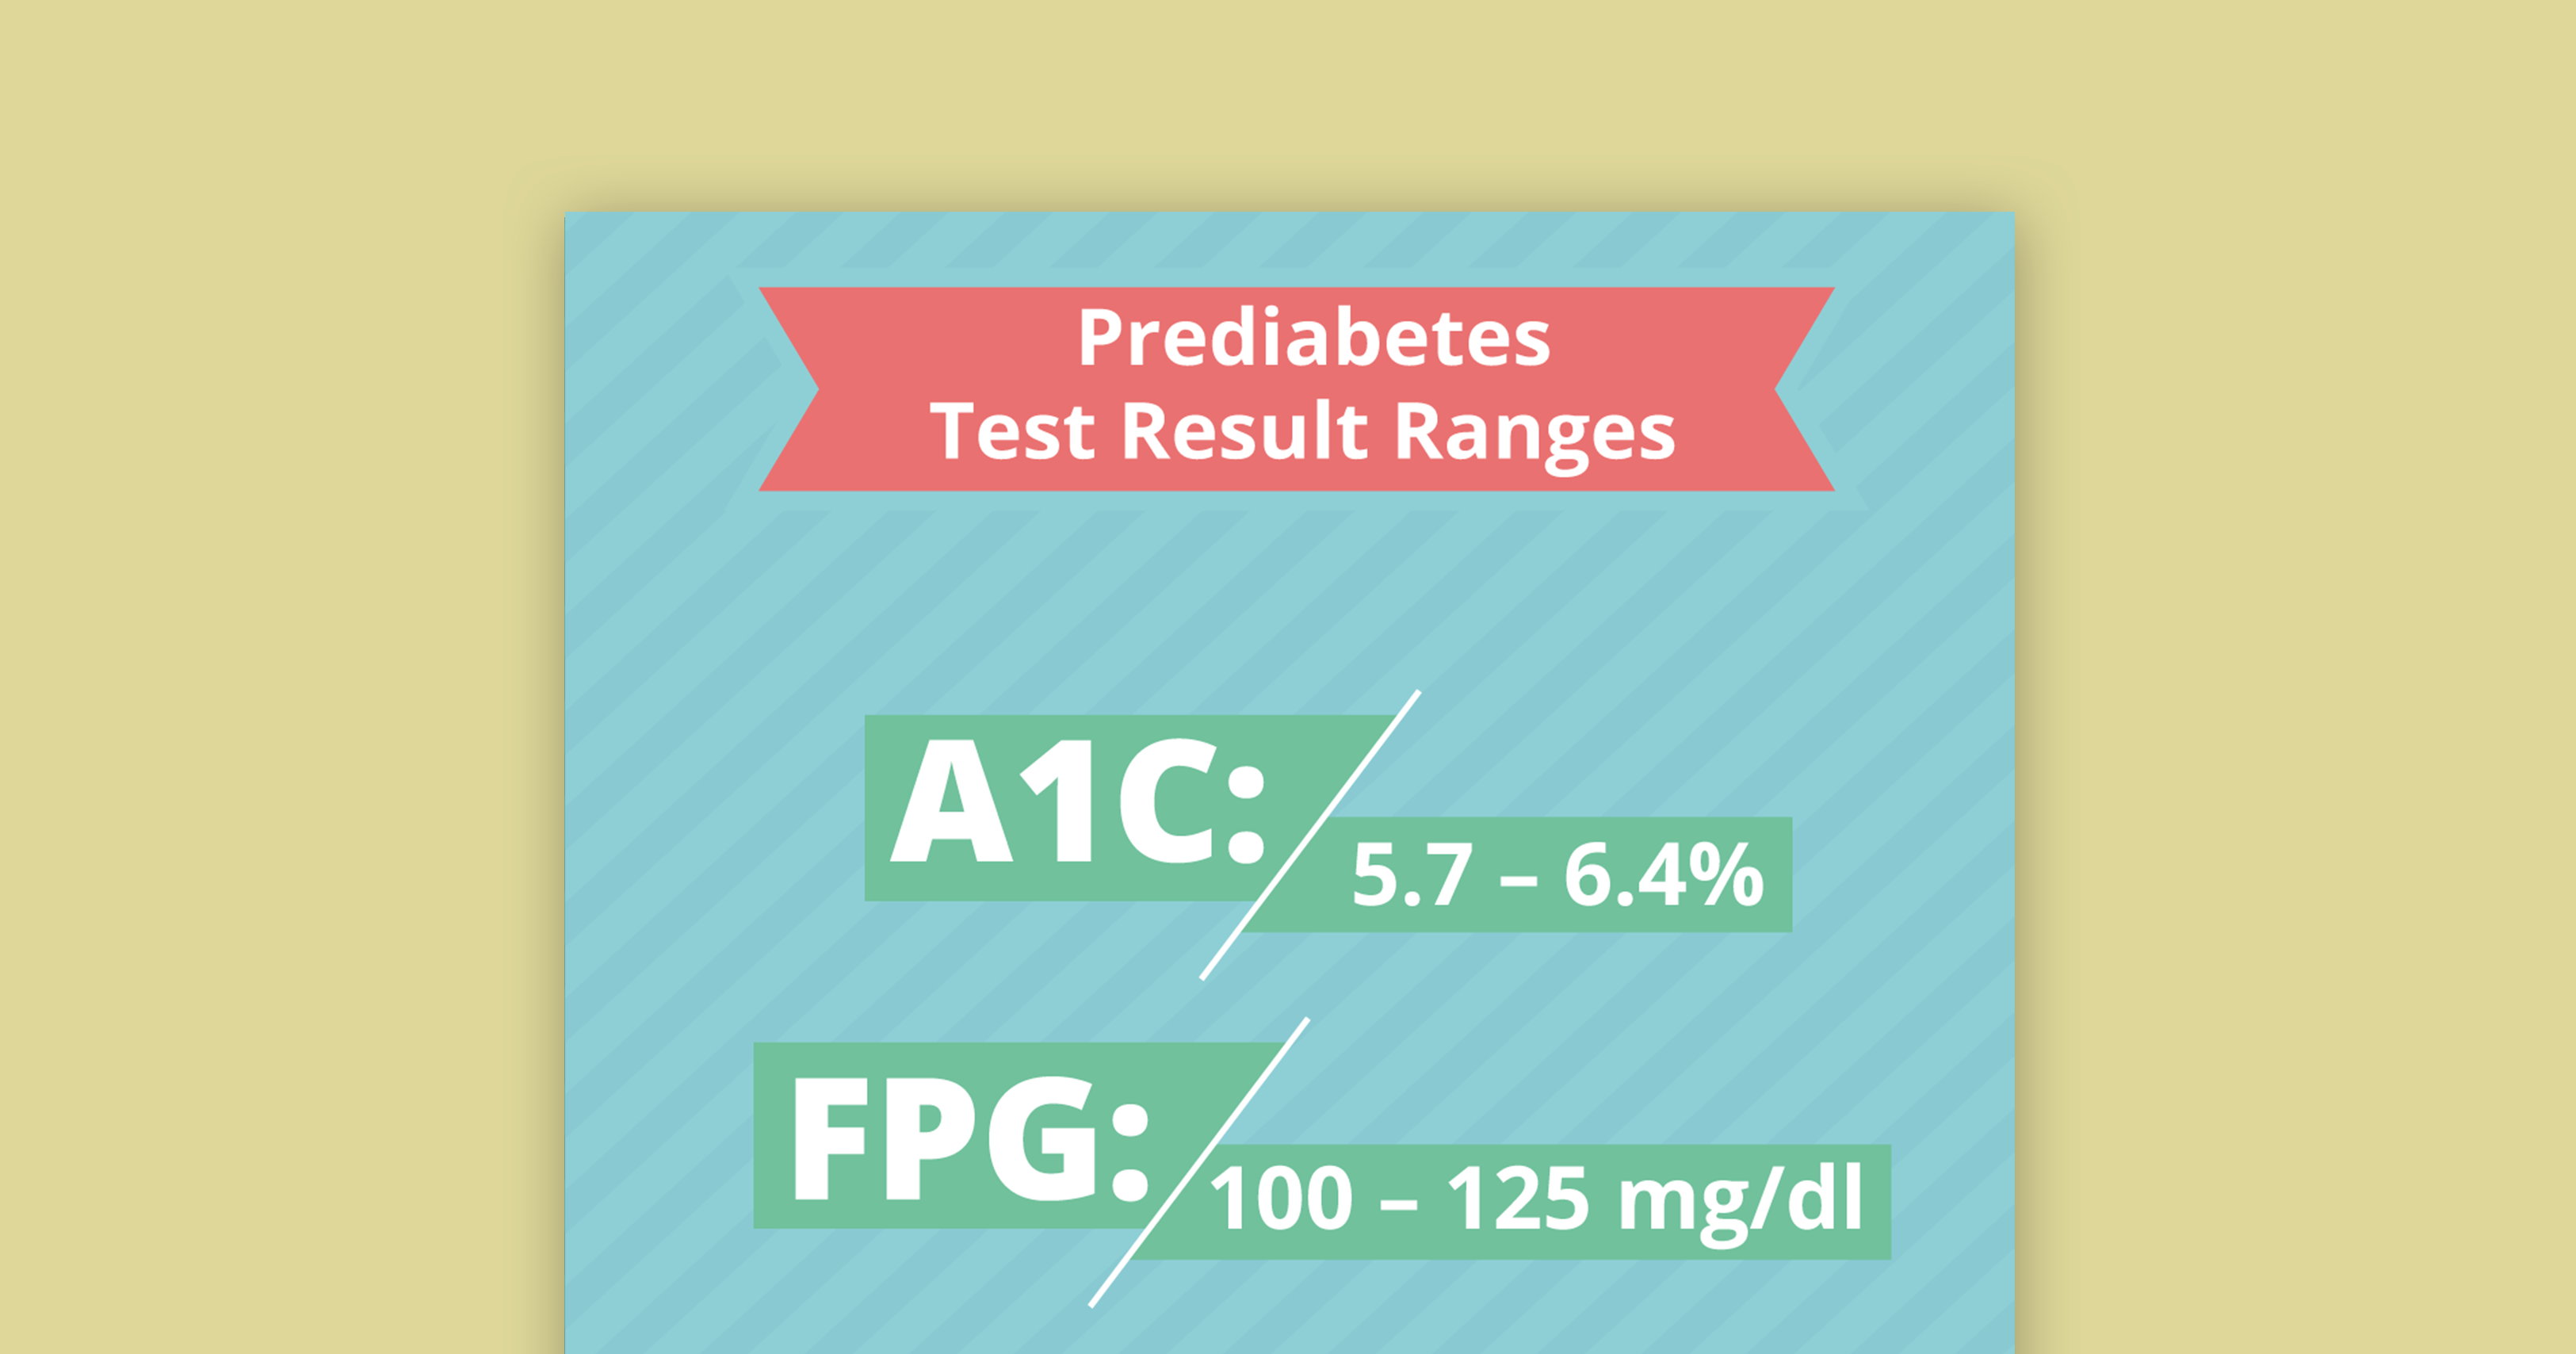 thumbnail prediabetes test result ranges